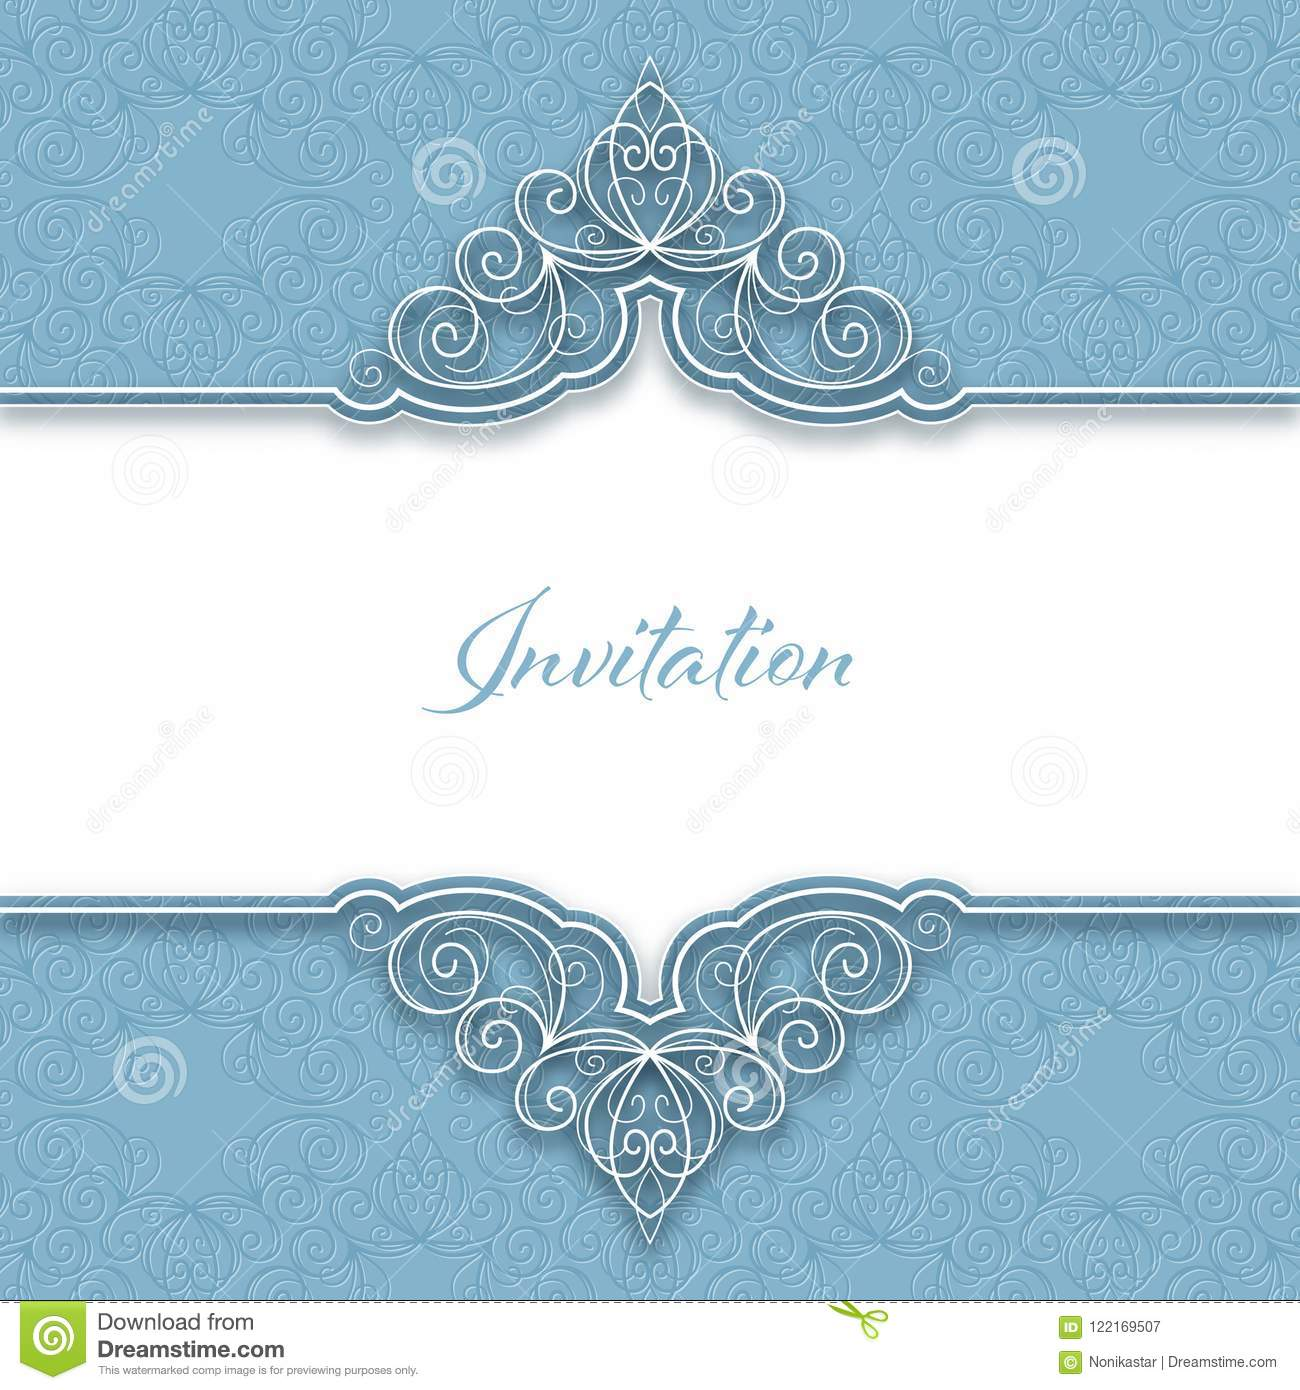 Vintage invitation template stock vector illustration of banner download vintage invitation template stock vector illustration of banner line 122169507 stopboris Images